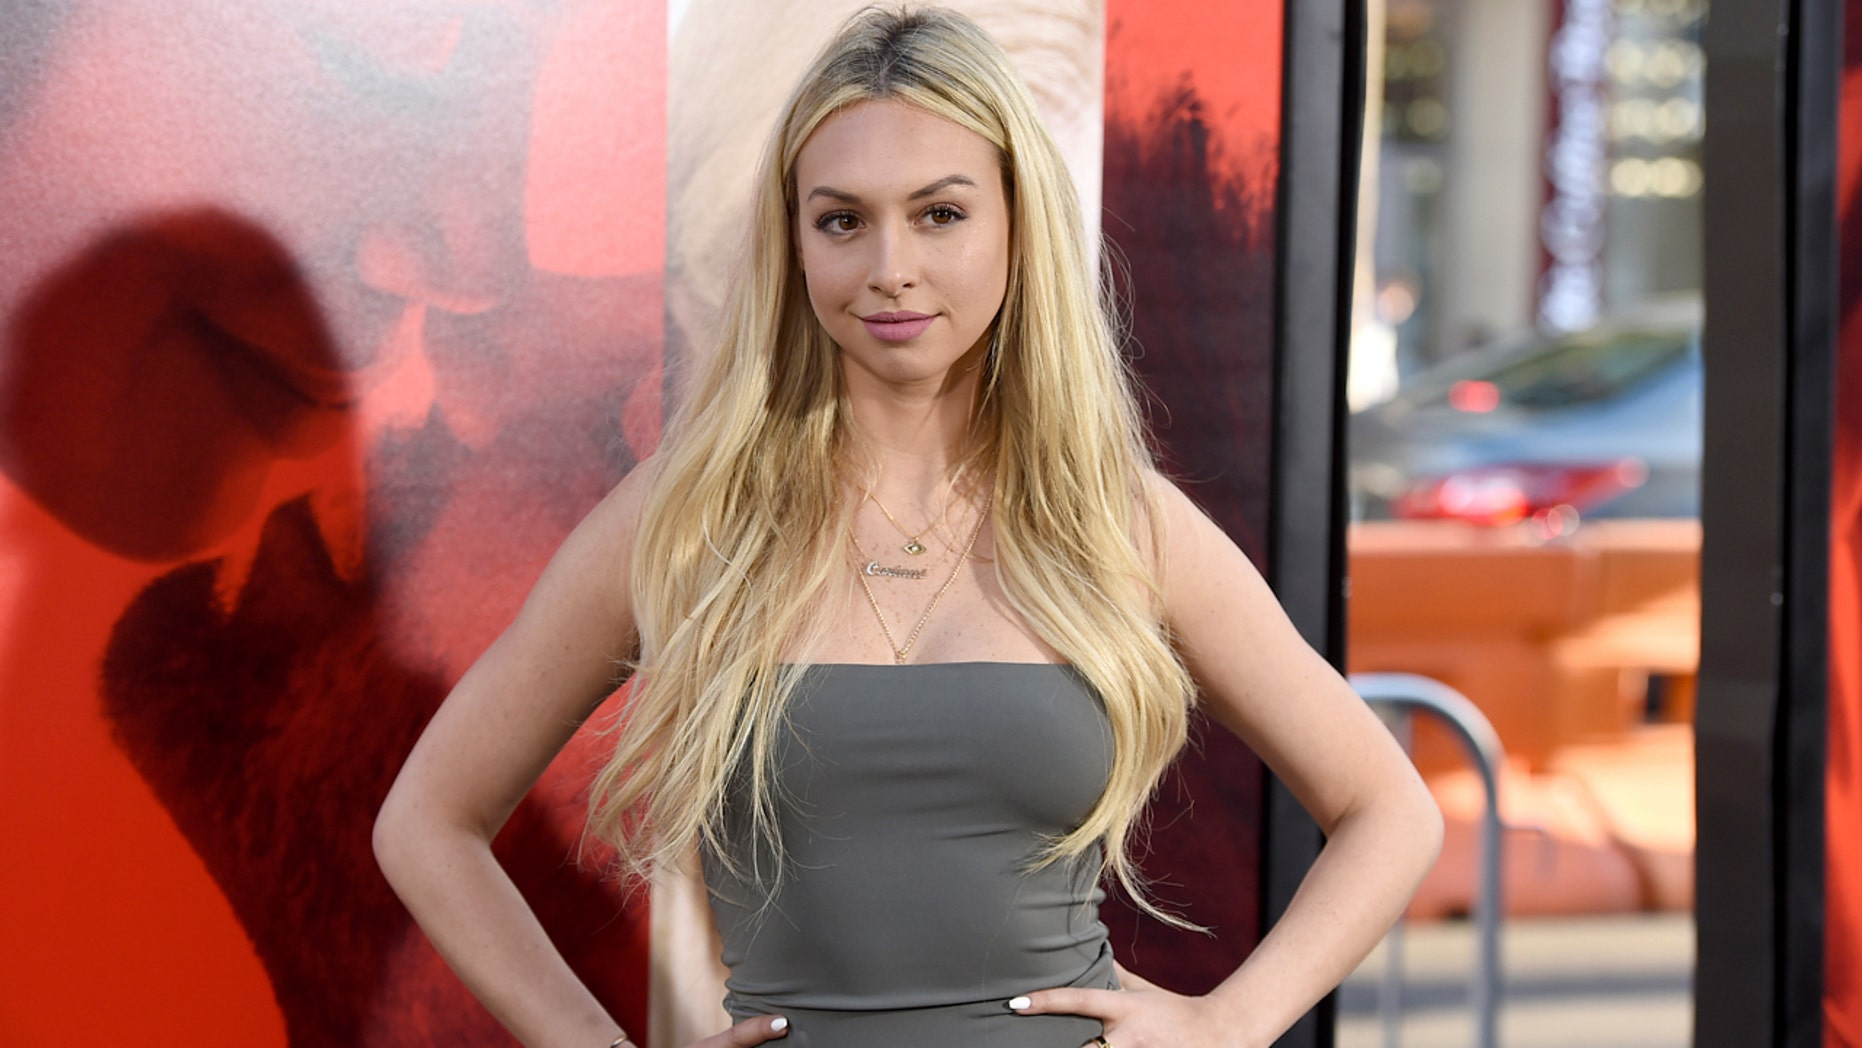 """FILE - In this Tuesday, April 18, 2017, file photo, Corinne Olympios arrives at the Los Angeles premiere of """"Unforgettable"""" at the TCL Chinese Theatre. Olympios, a contestant on ABC's """"Bachelor in Paradise,"""" said she was a """"victim"""" who was seeking therapy for what she called the physical and emotional trauma she experienced during the taping of one of the show's episodes on June 4. Warner Bros., the show's producer, said Tuesday, June 20, that it had reviewed videotape from the show and found that no cast member misbehaved or was in jeopardy on the set. (Photo by Jordan Strauss/Invision/AP, File)"""